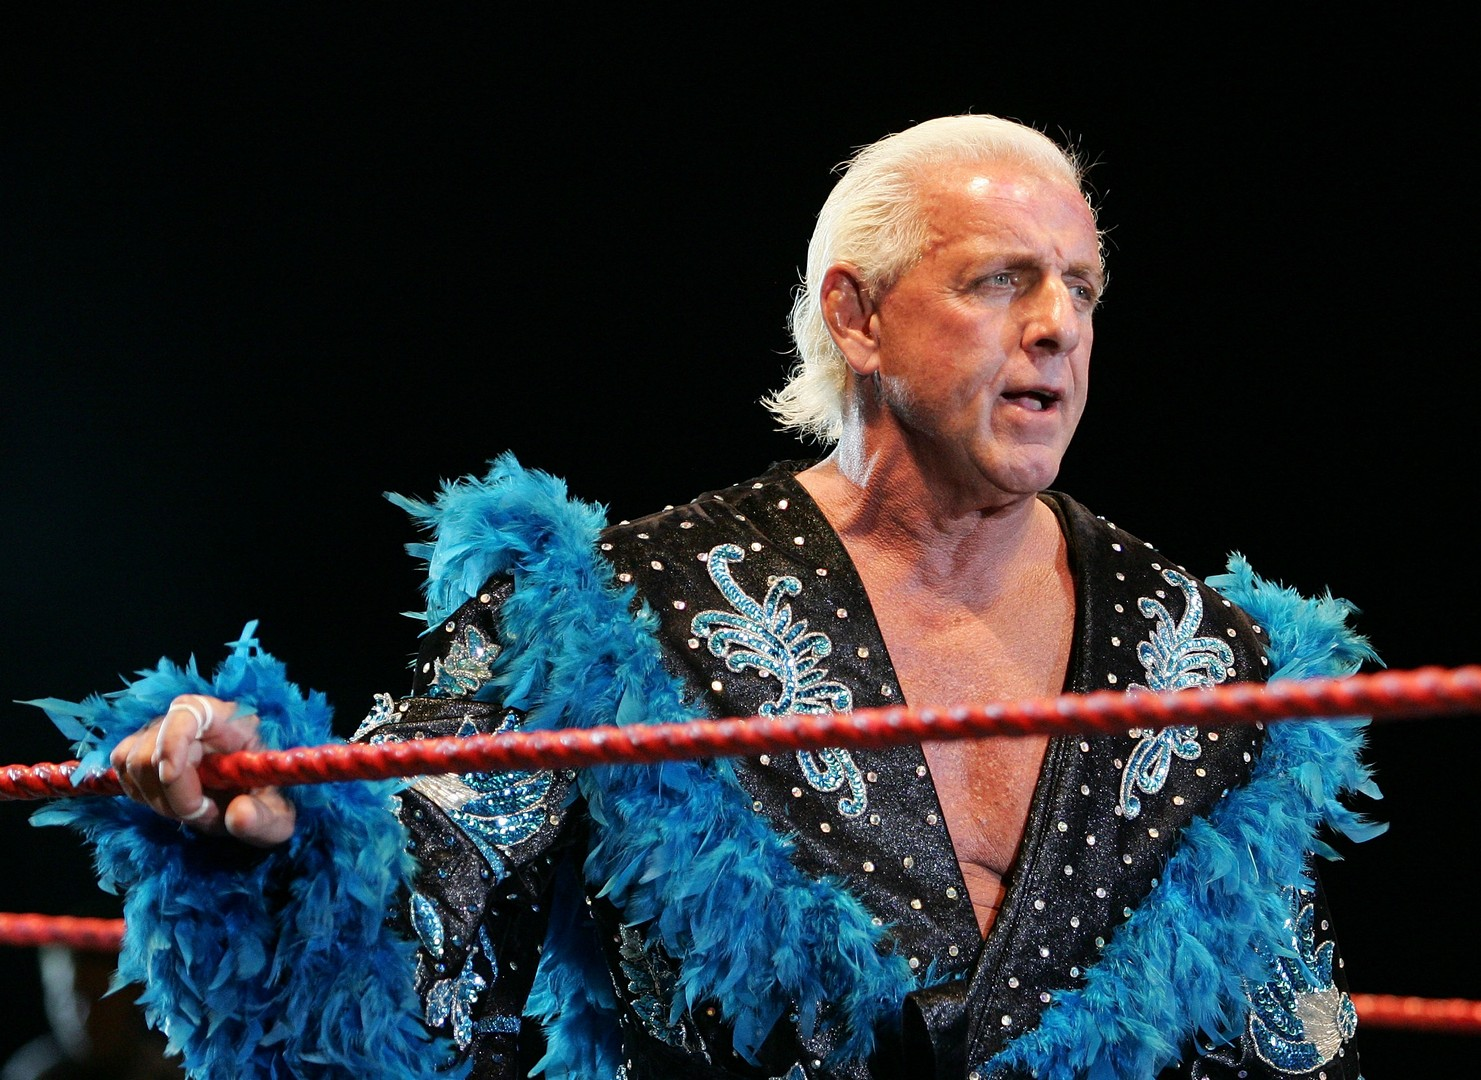 1481x1080 - Ric Flair Wallpapers 19